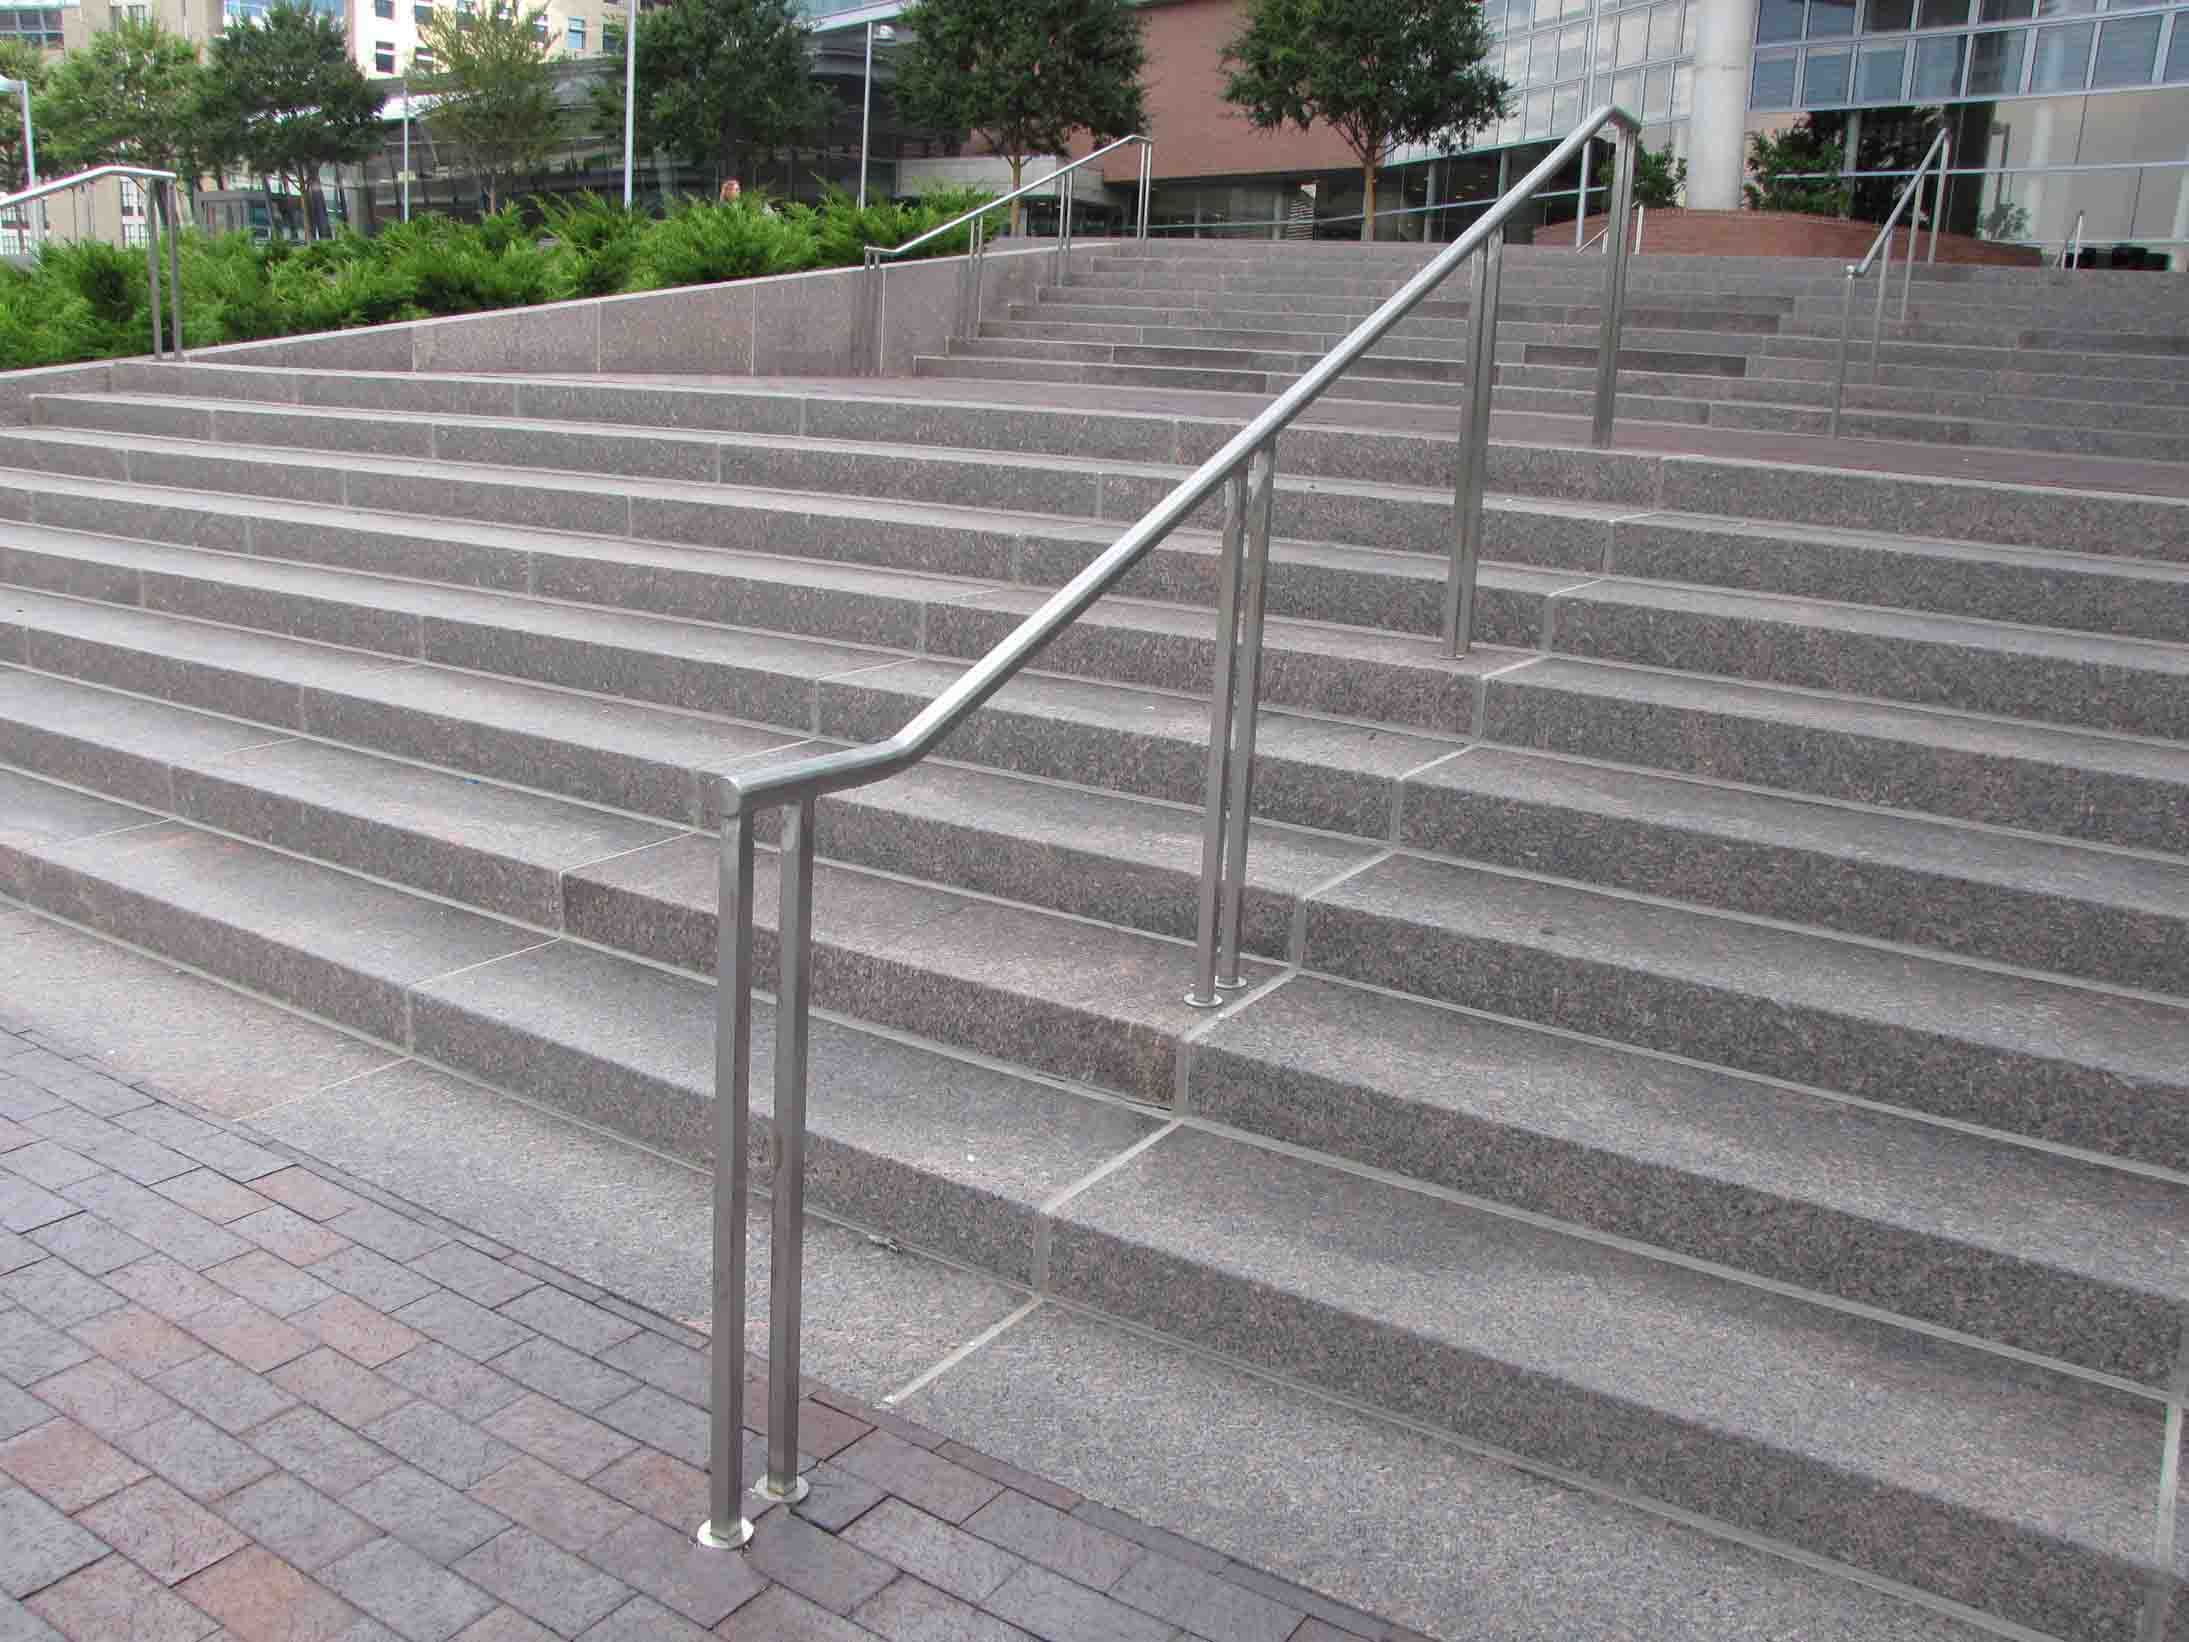 Handrails For Outside Steps Railings For Stairs Exterior | Outside Metal Stair Railing | Steel | Concrete | Steel Handrail | Porch | Outdoor Stair